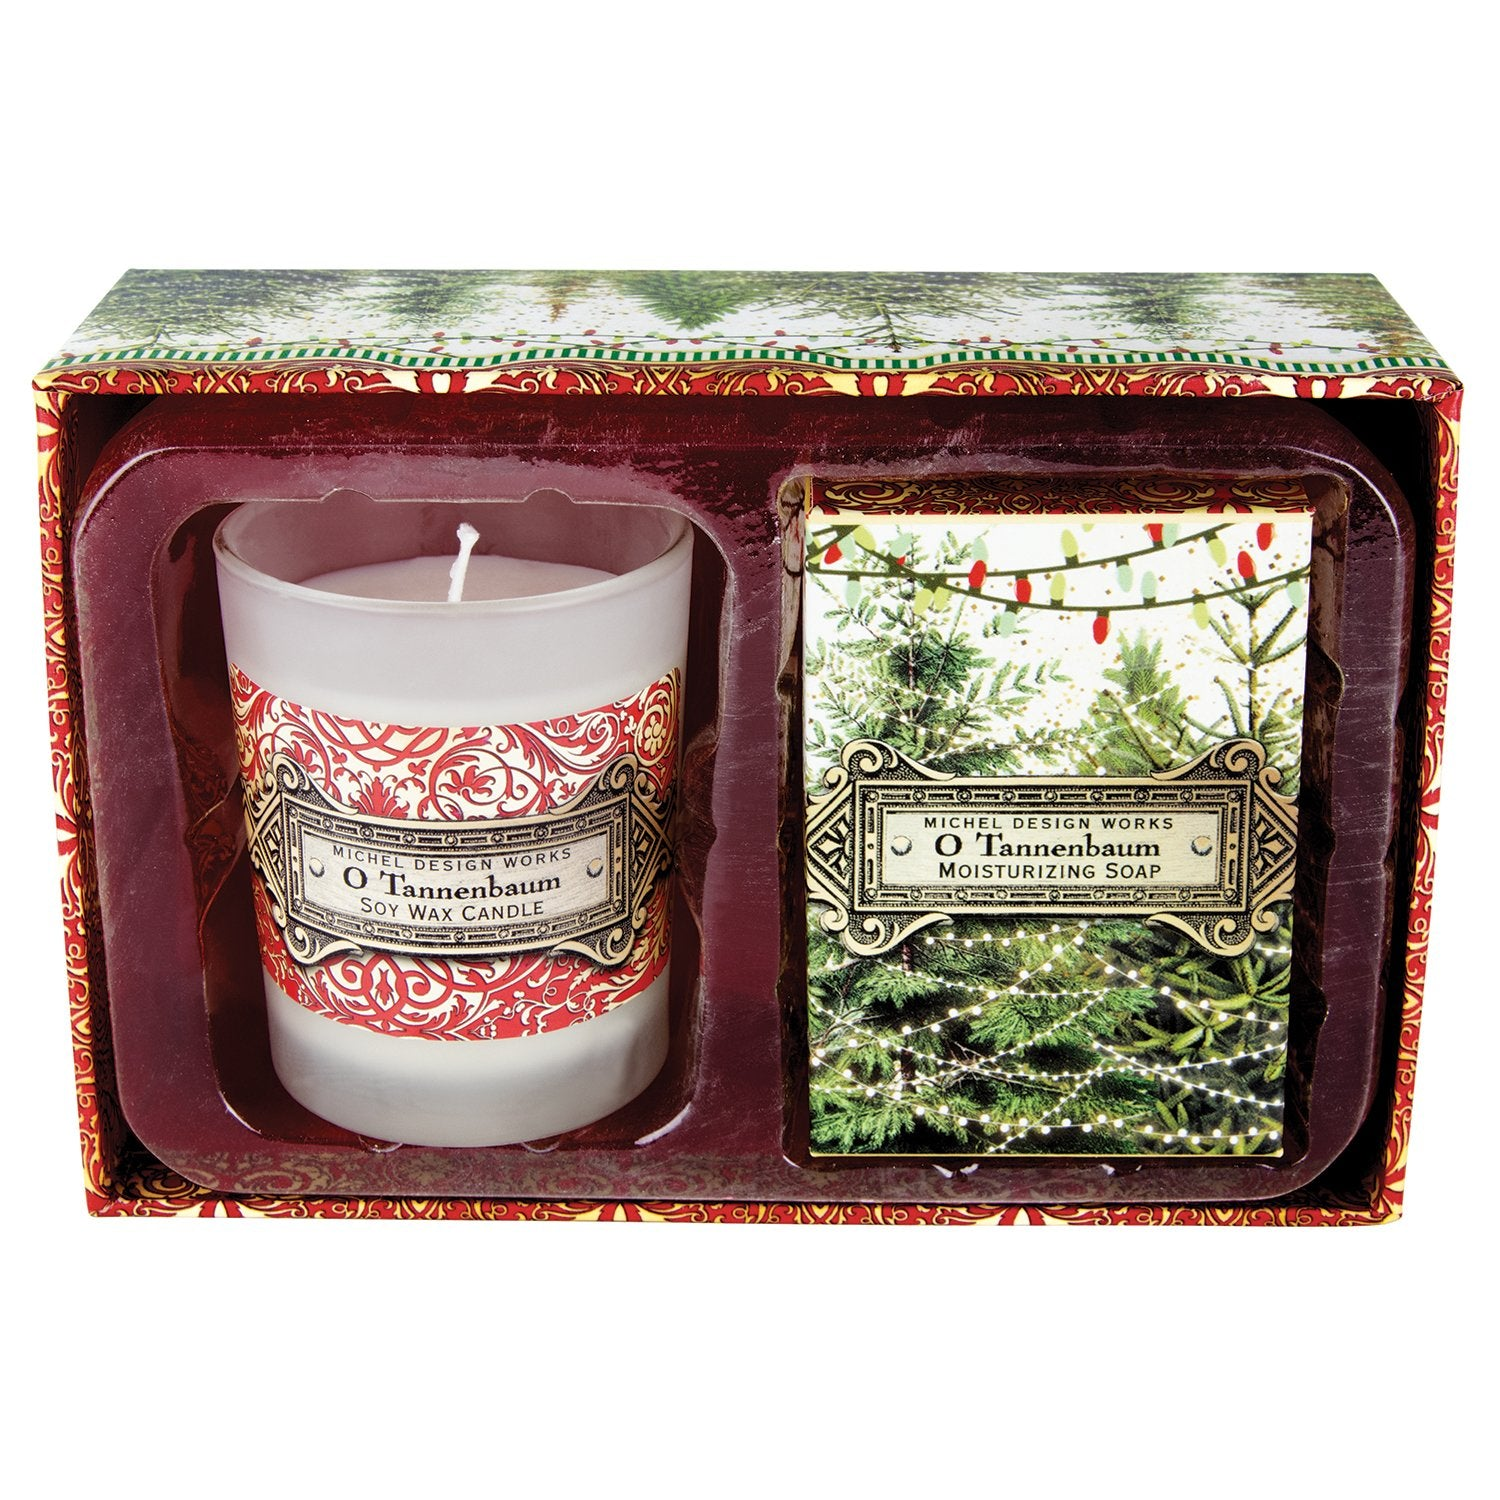 O Tannenbaum Candle and Soap Gift Set